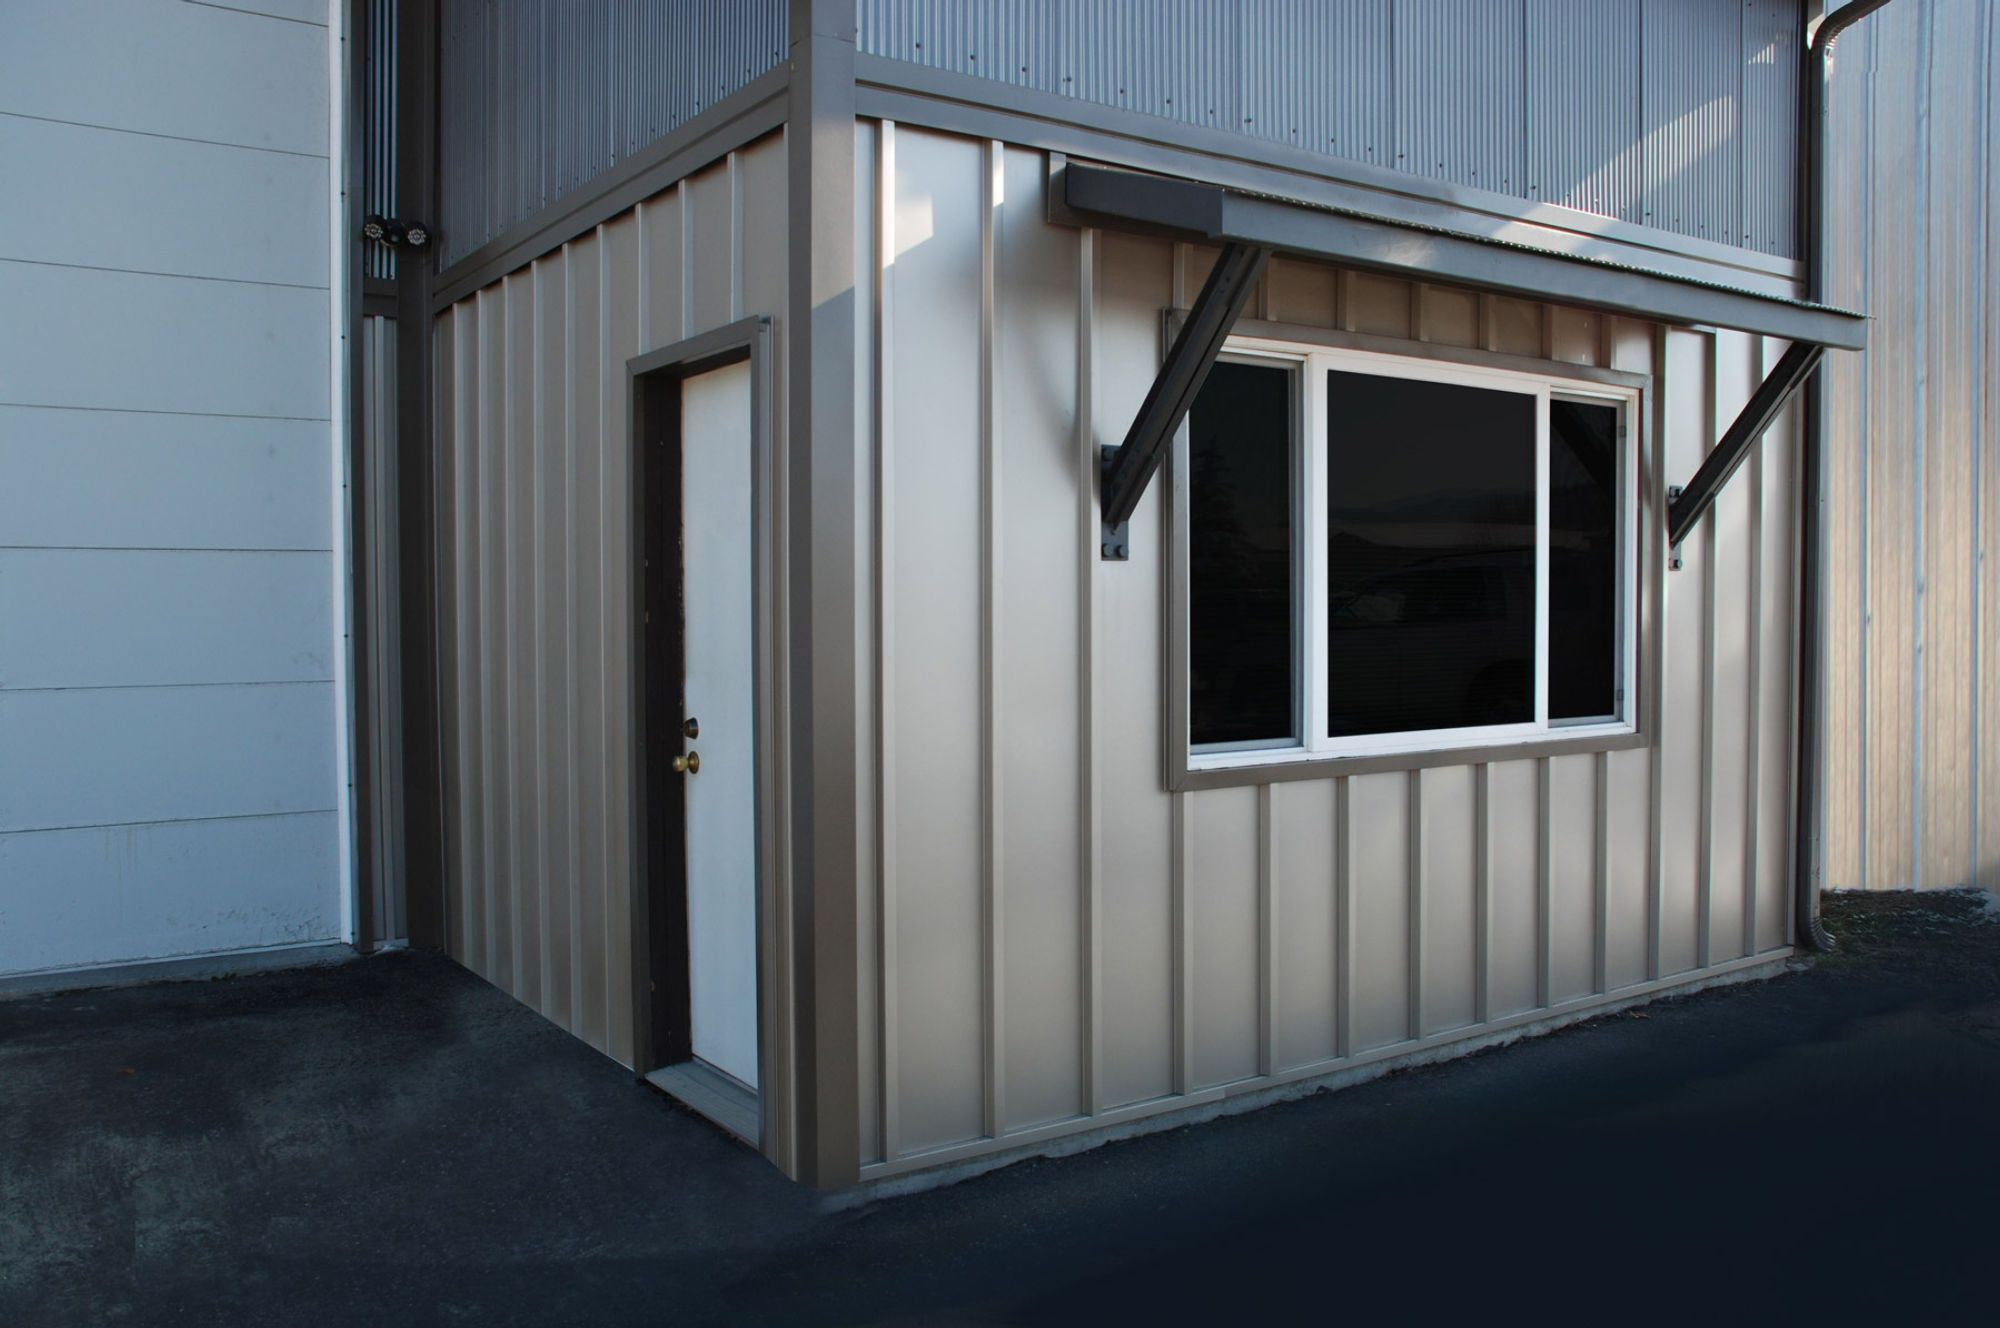 Horizontal Board And Batten Siding Board And Batten Metal Siding With Corrugated Metal Siding